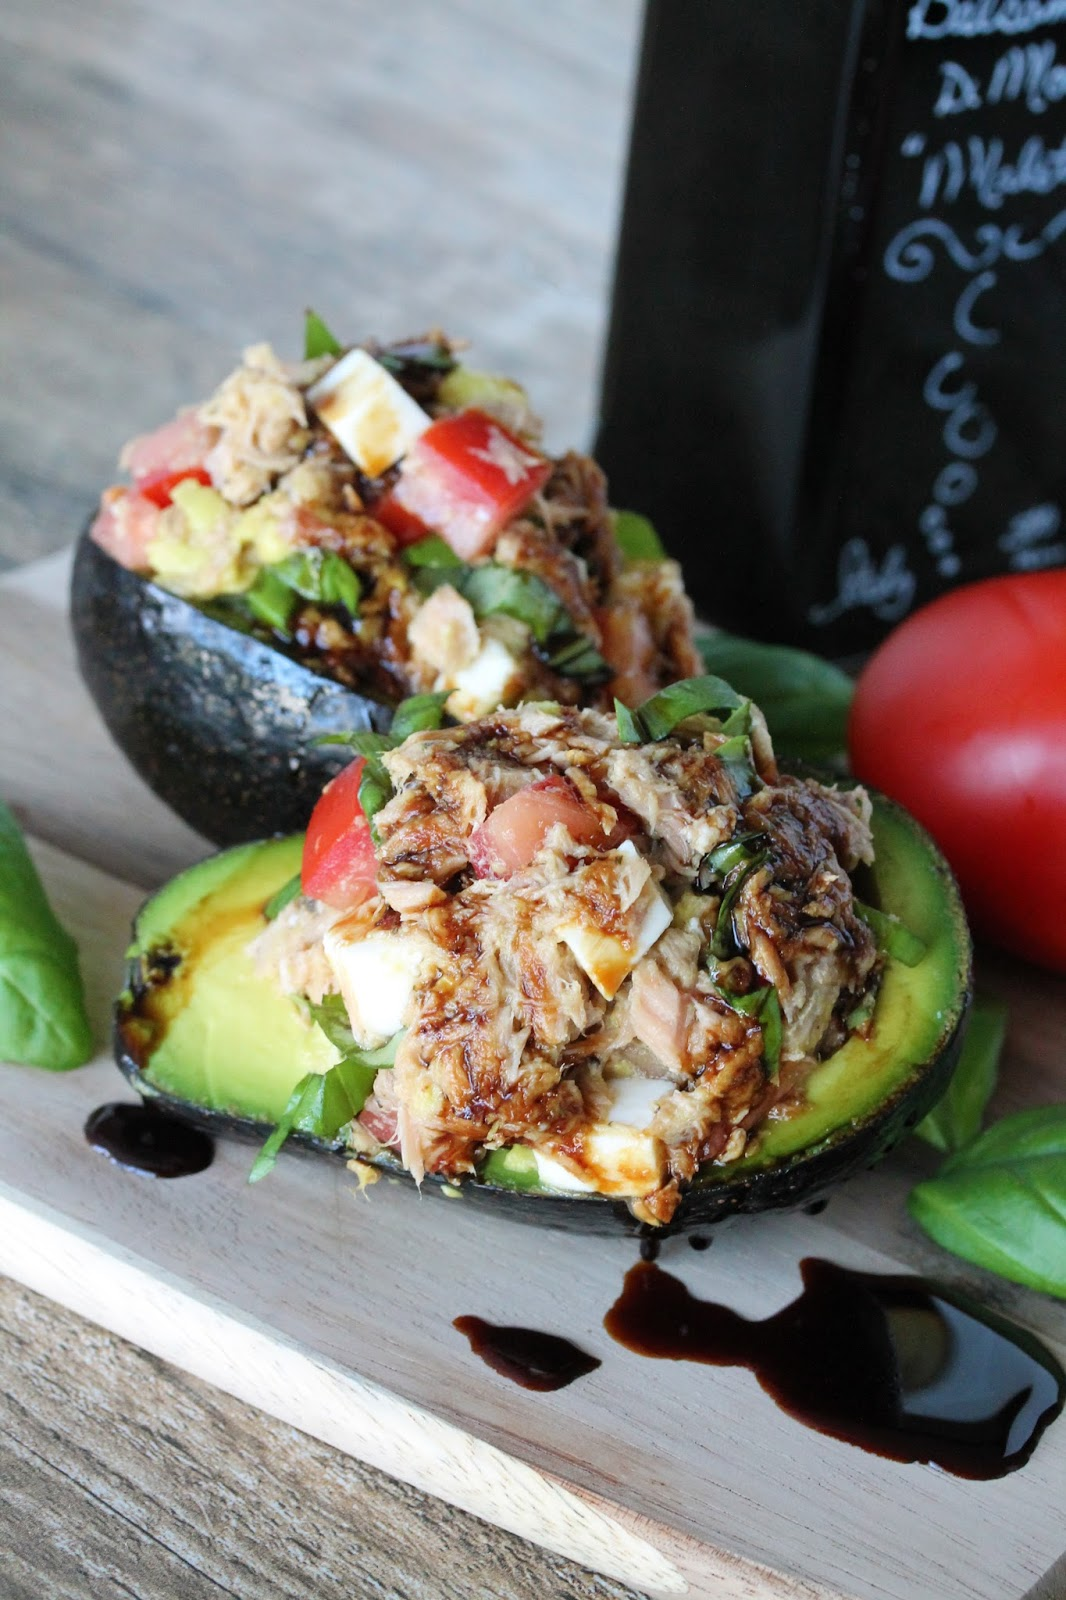 The Stay At Home Chef: Caprese Tuna Salad Stuffed Avocados